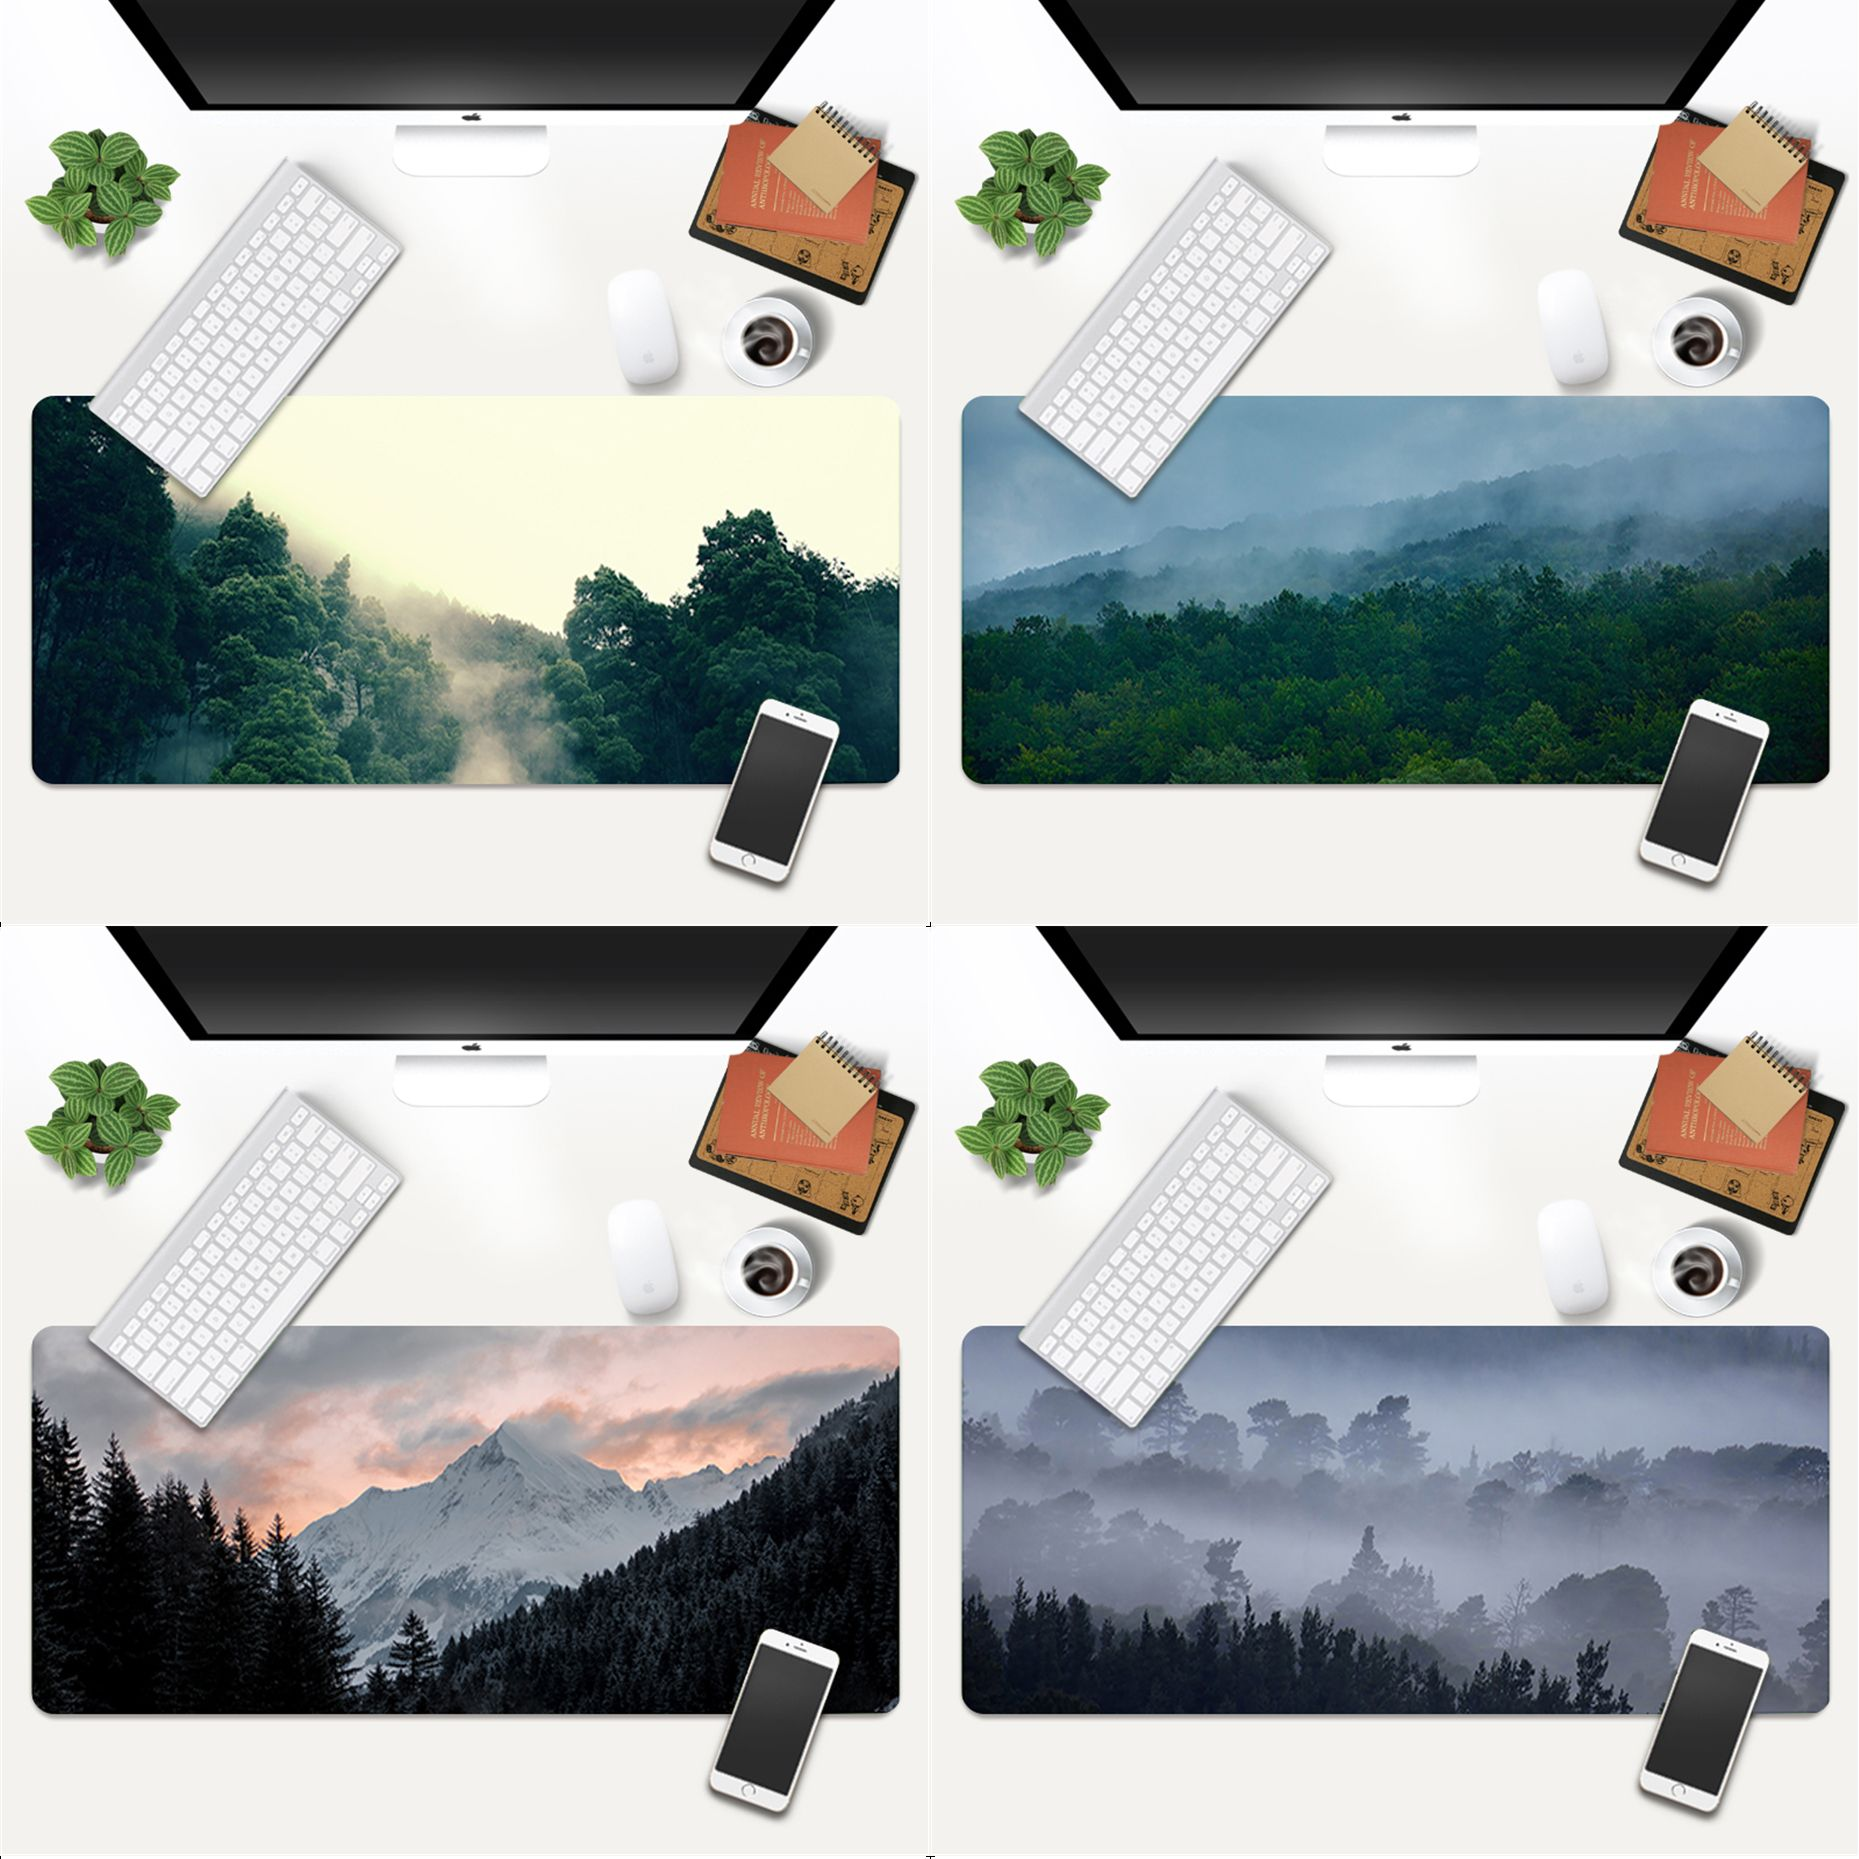 MaiYaCa Top Quality Forest Cloud gamer play mats Mousepad Gaming Mouse Pad Large Deak Mat 700x300mm for overwatch/cs go maiyaca 2018 new persian rugs mouse pad gamer play mats size for 180x220x2mm and 250x290x2mm small mousepad